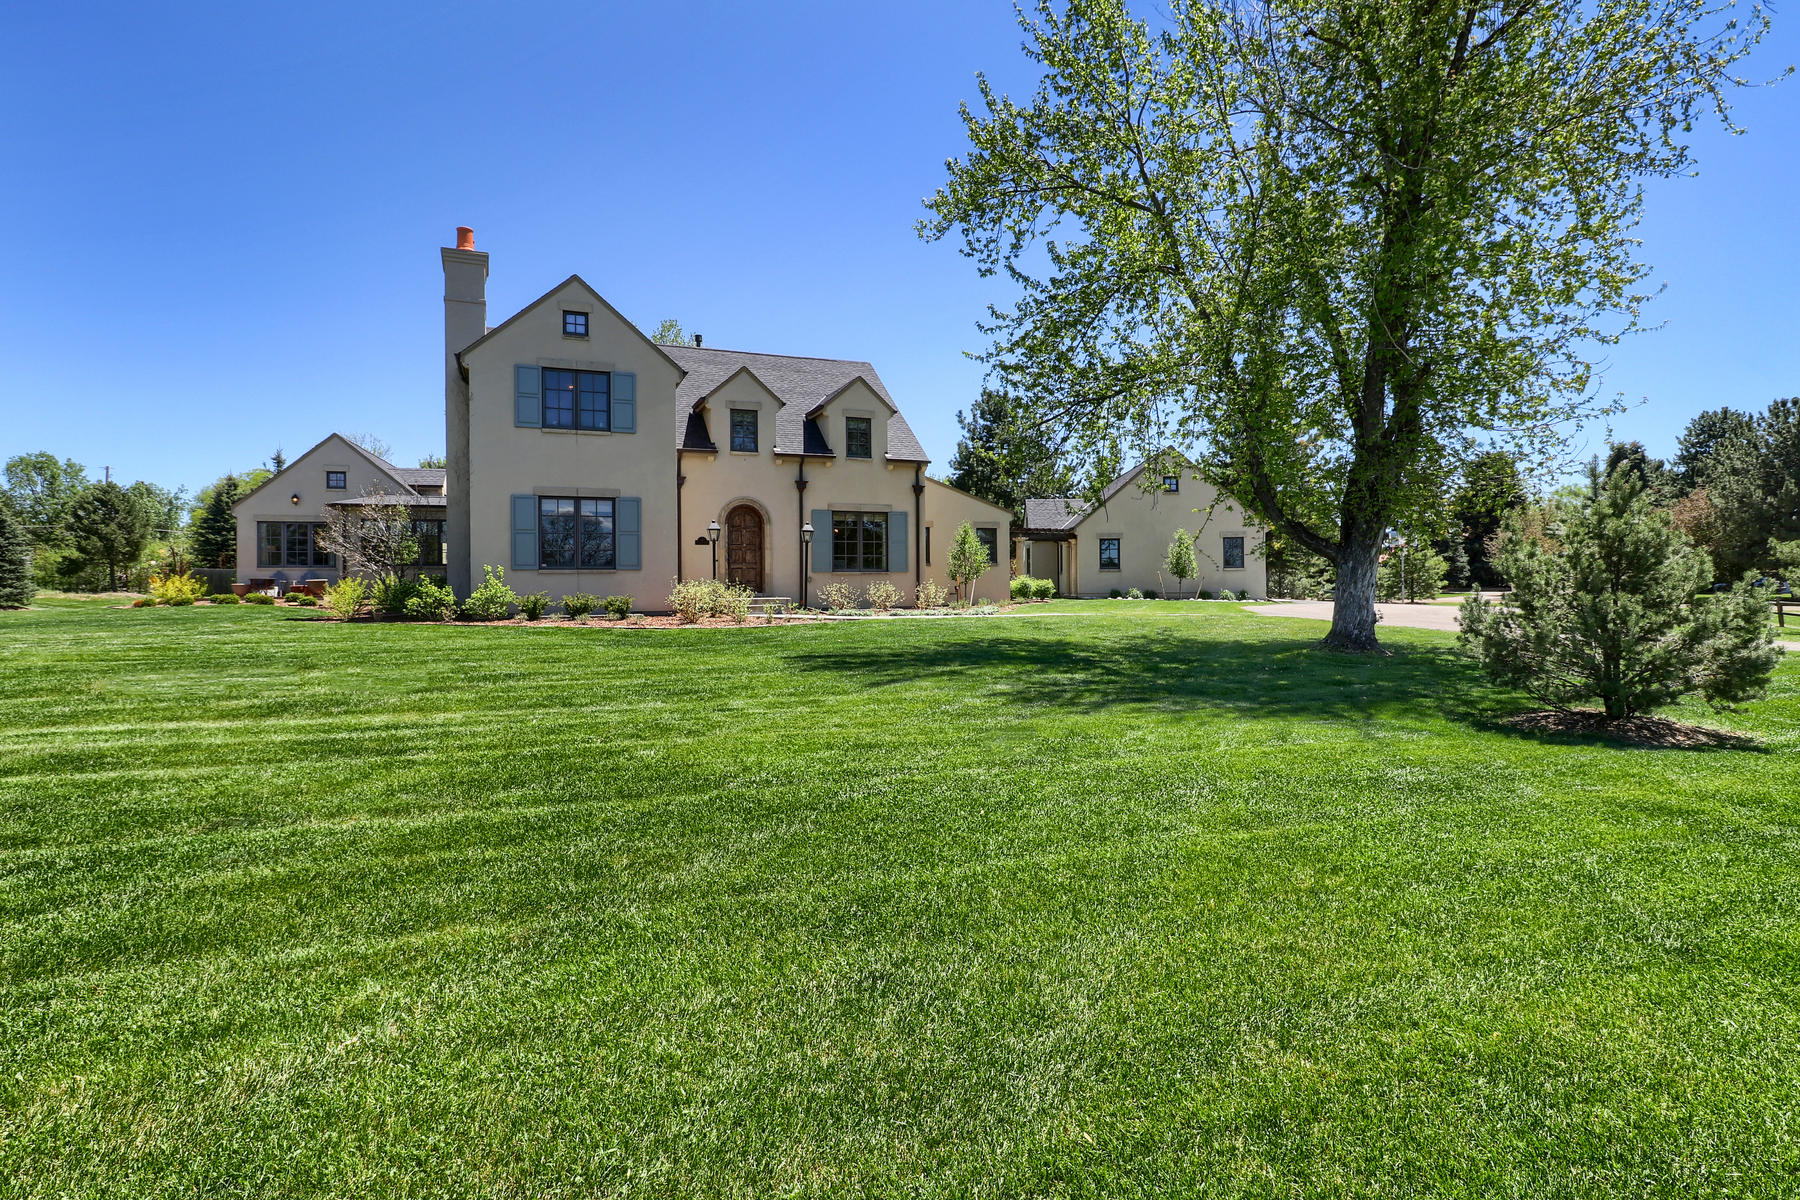 Single Family Home for Active at Stunning mountain views! 14 Parkway Drive Cherry Hills Village, Colorado 80113 United States